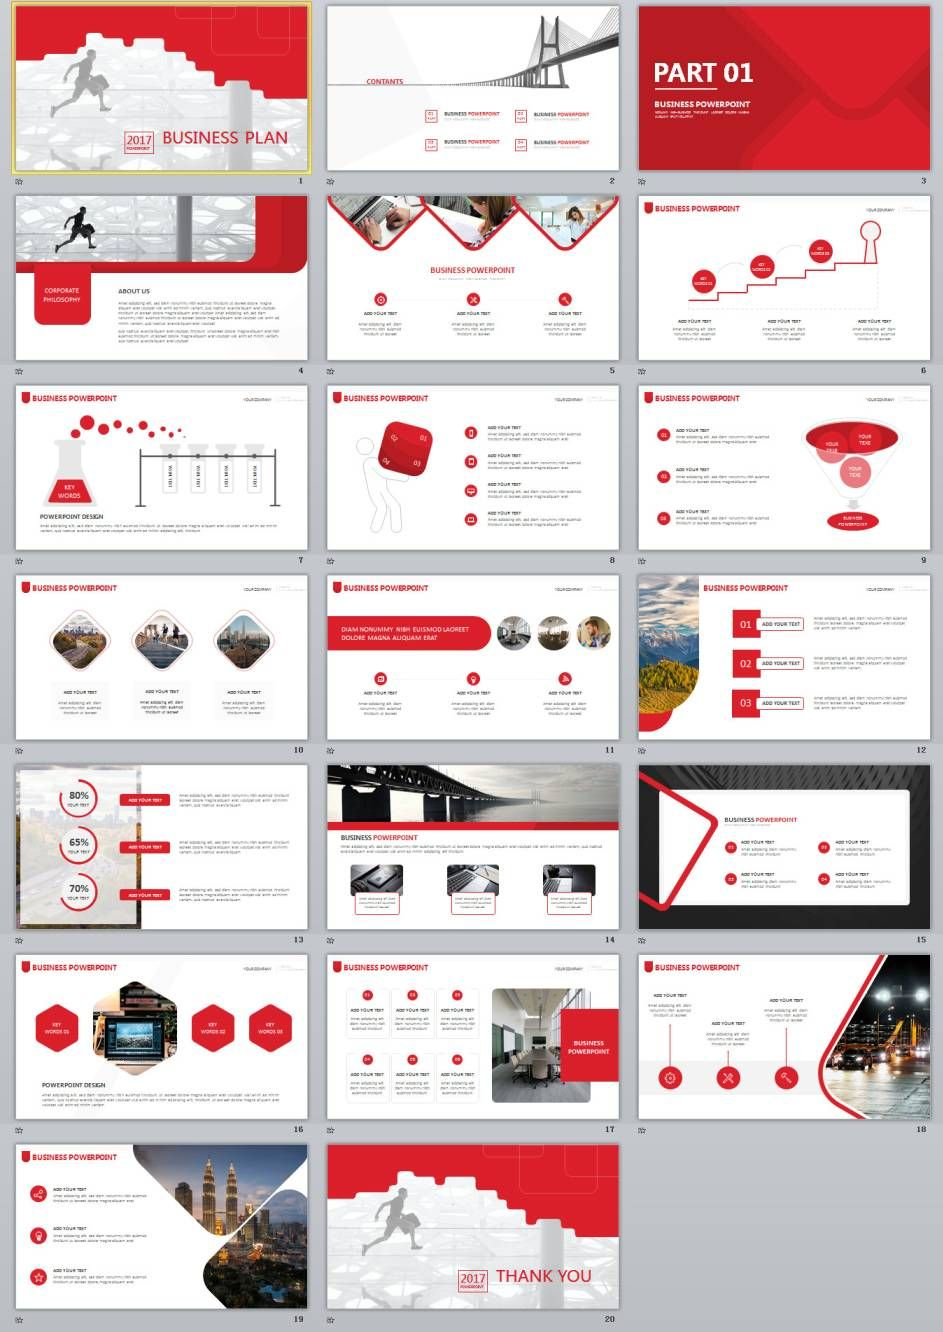 2017 business plan powerpoint template powerpoint online 2017 business plan powerpoint template the highest quality powerpoint templates and keynote templates download wajeb